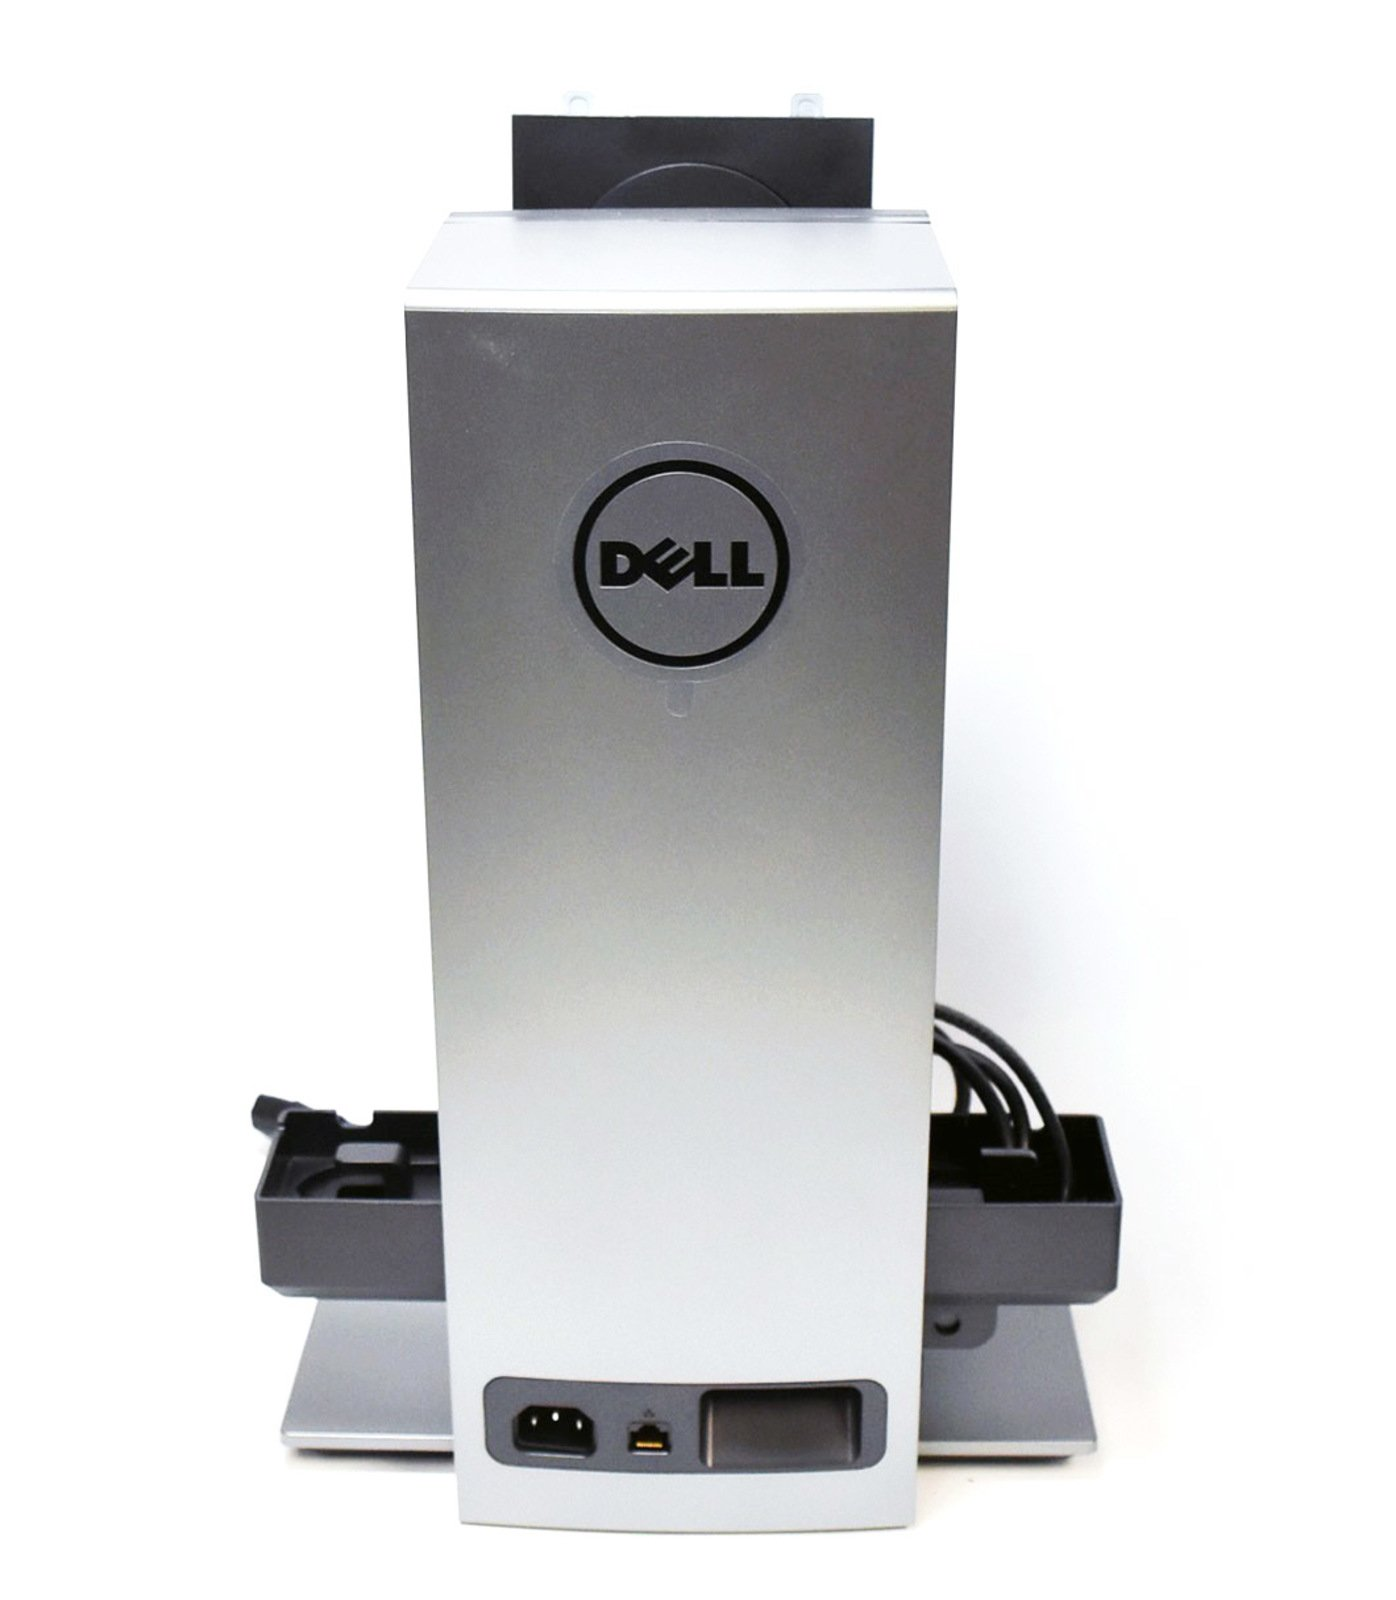 New PM7PK Genuine OEM Dell OptiPlex SFF 7040 7050 5040 5050 3040 3050 3046 Small Form Factor All-In-One SFF Desktop and Monitor Compact AIO Stand OSS17 Ethernet Power Cable Cover VESA Adapter M7V3M by Dell (Image #4)